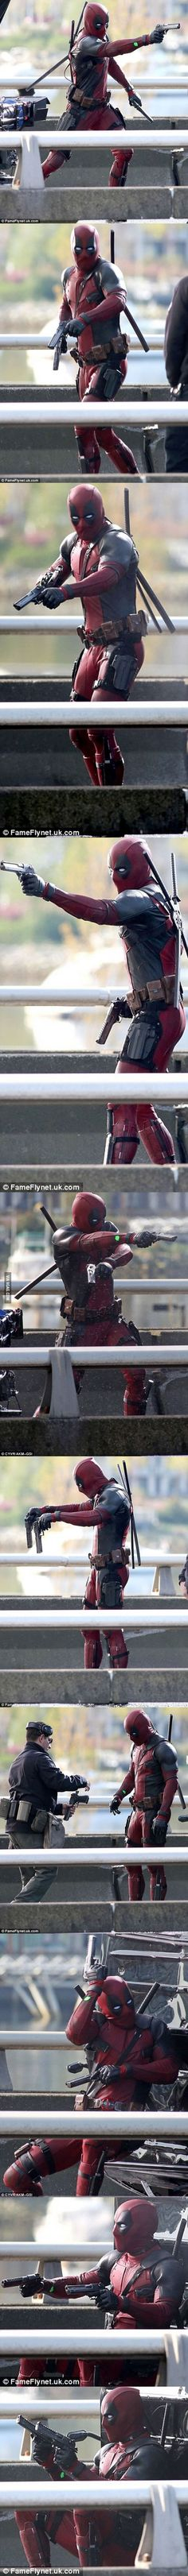 of the Deadpool movie has begun! Filming of the Deadpool movie has begun!Filming of the Deadpool movie has begun! Deadpool Und Spiderman, Deadpool Movie, Comic Movies, Marvel Movies, Marvel Dc Comics, Marvel Vs, Cosplay, Marvel Cinematic Universe, Comic Character